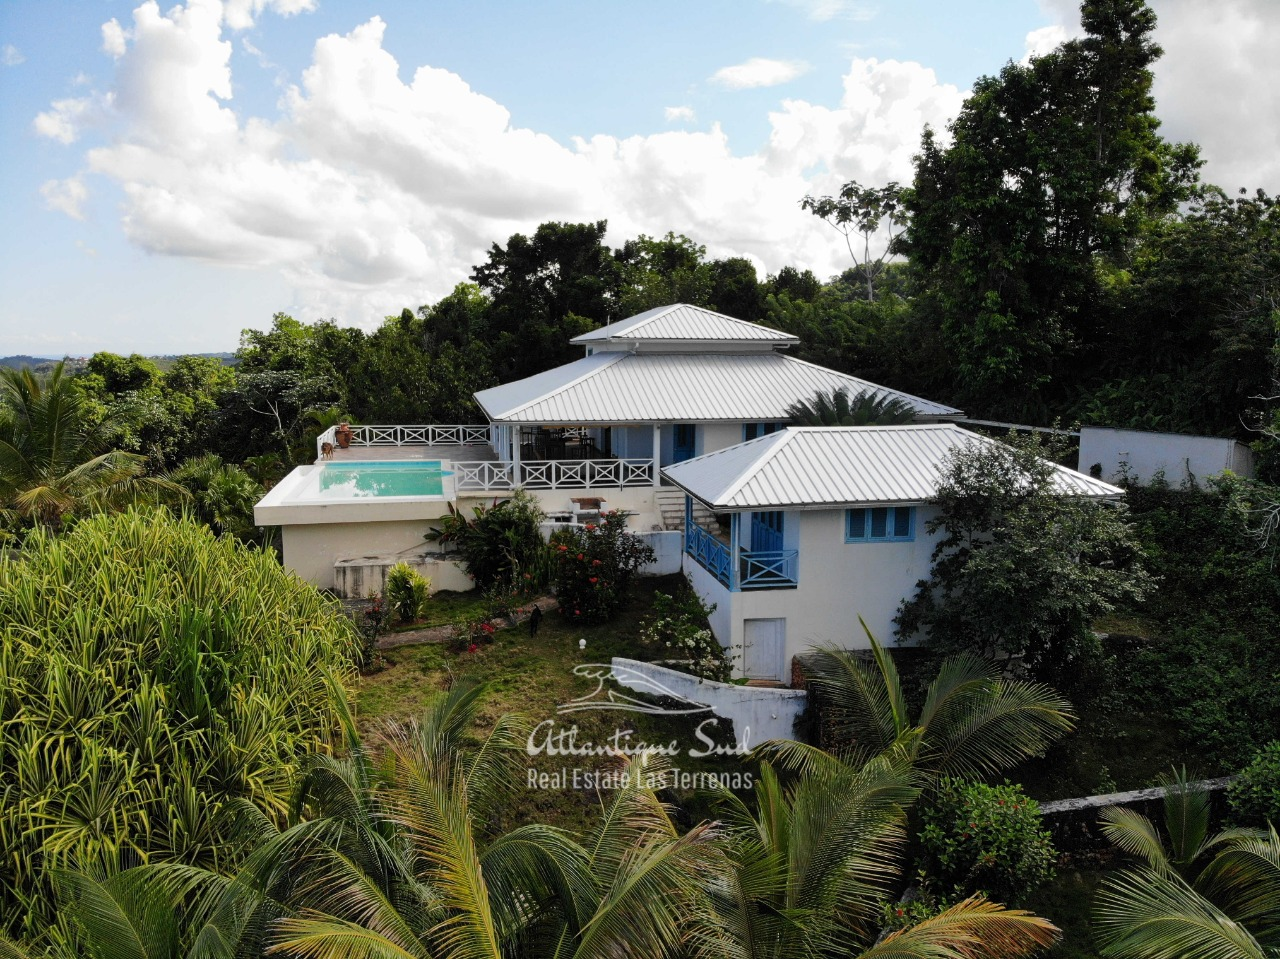 Villa on hill for sale in Las Terrenas DR 3.jpeg